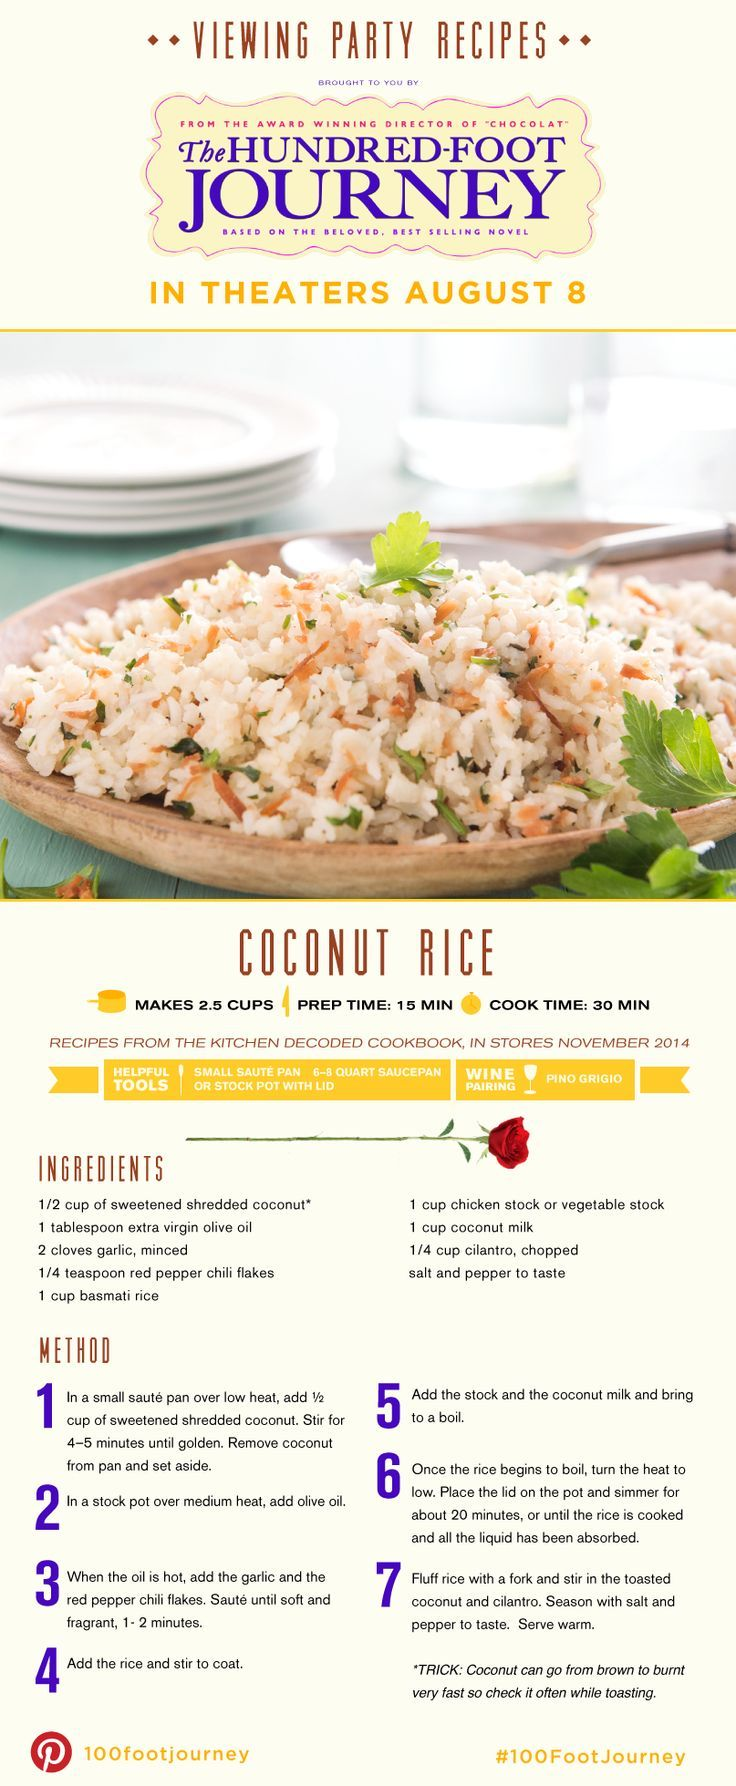 Coconut Rice - 100 Foot journey